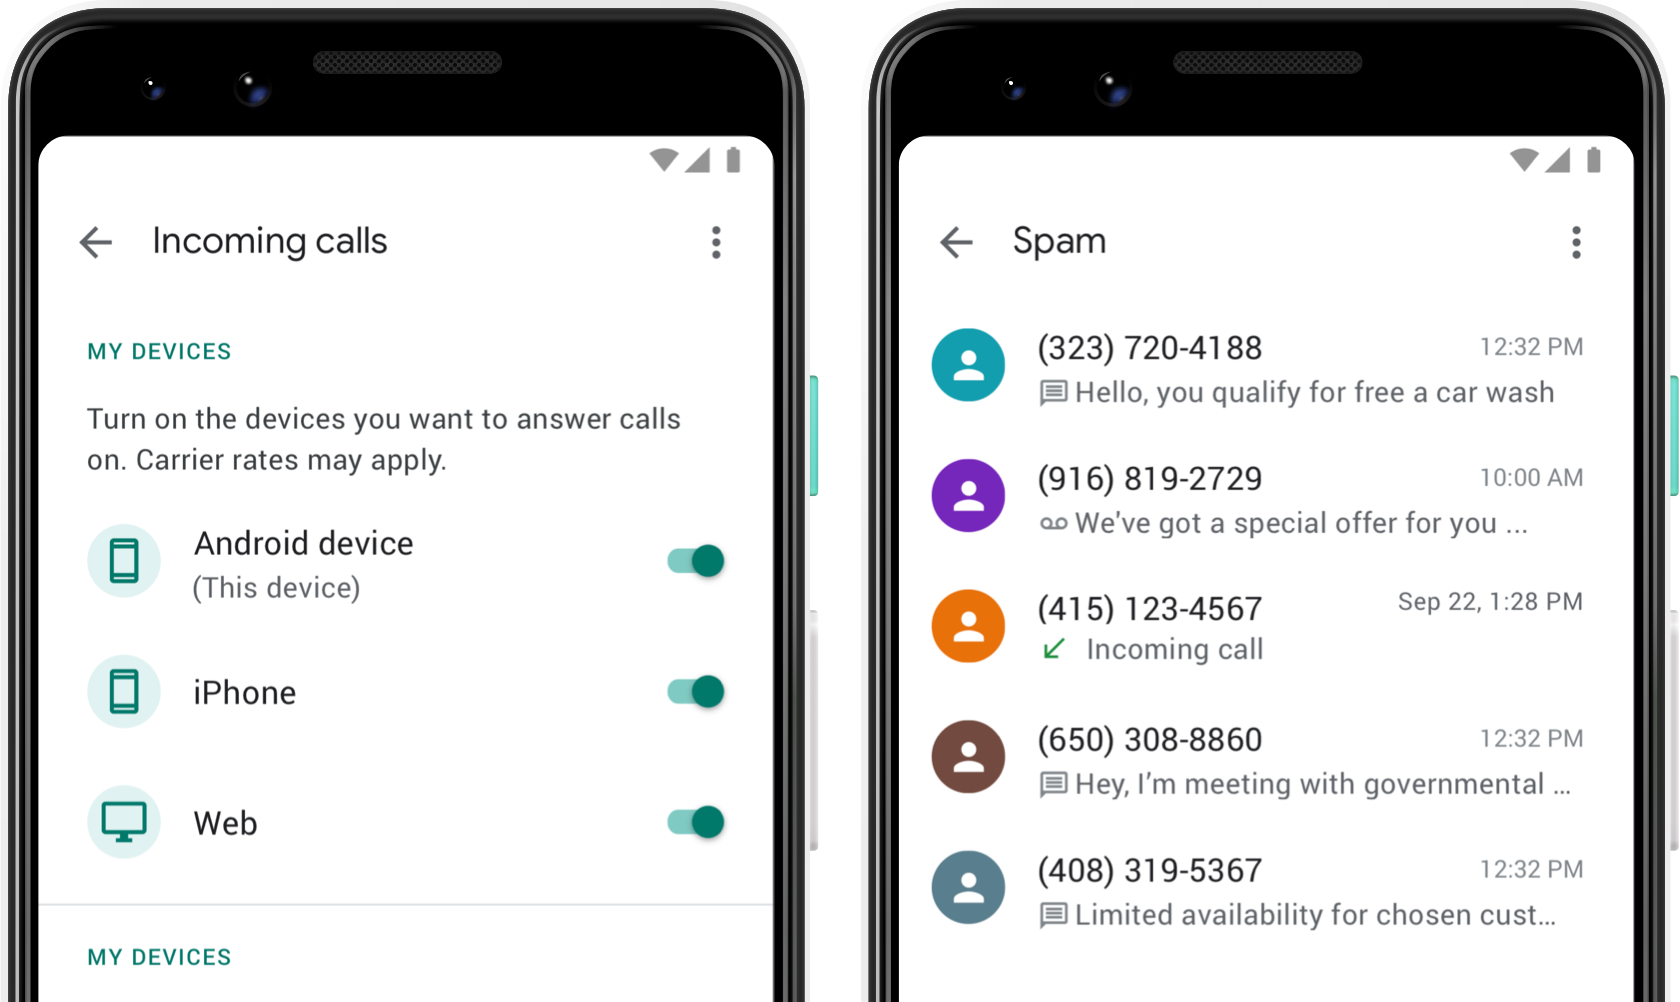 Image showing the Google Voice spam page, showing a list of calls marked as spam